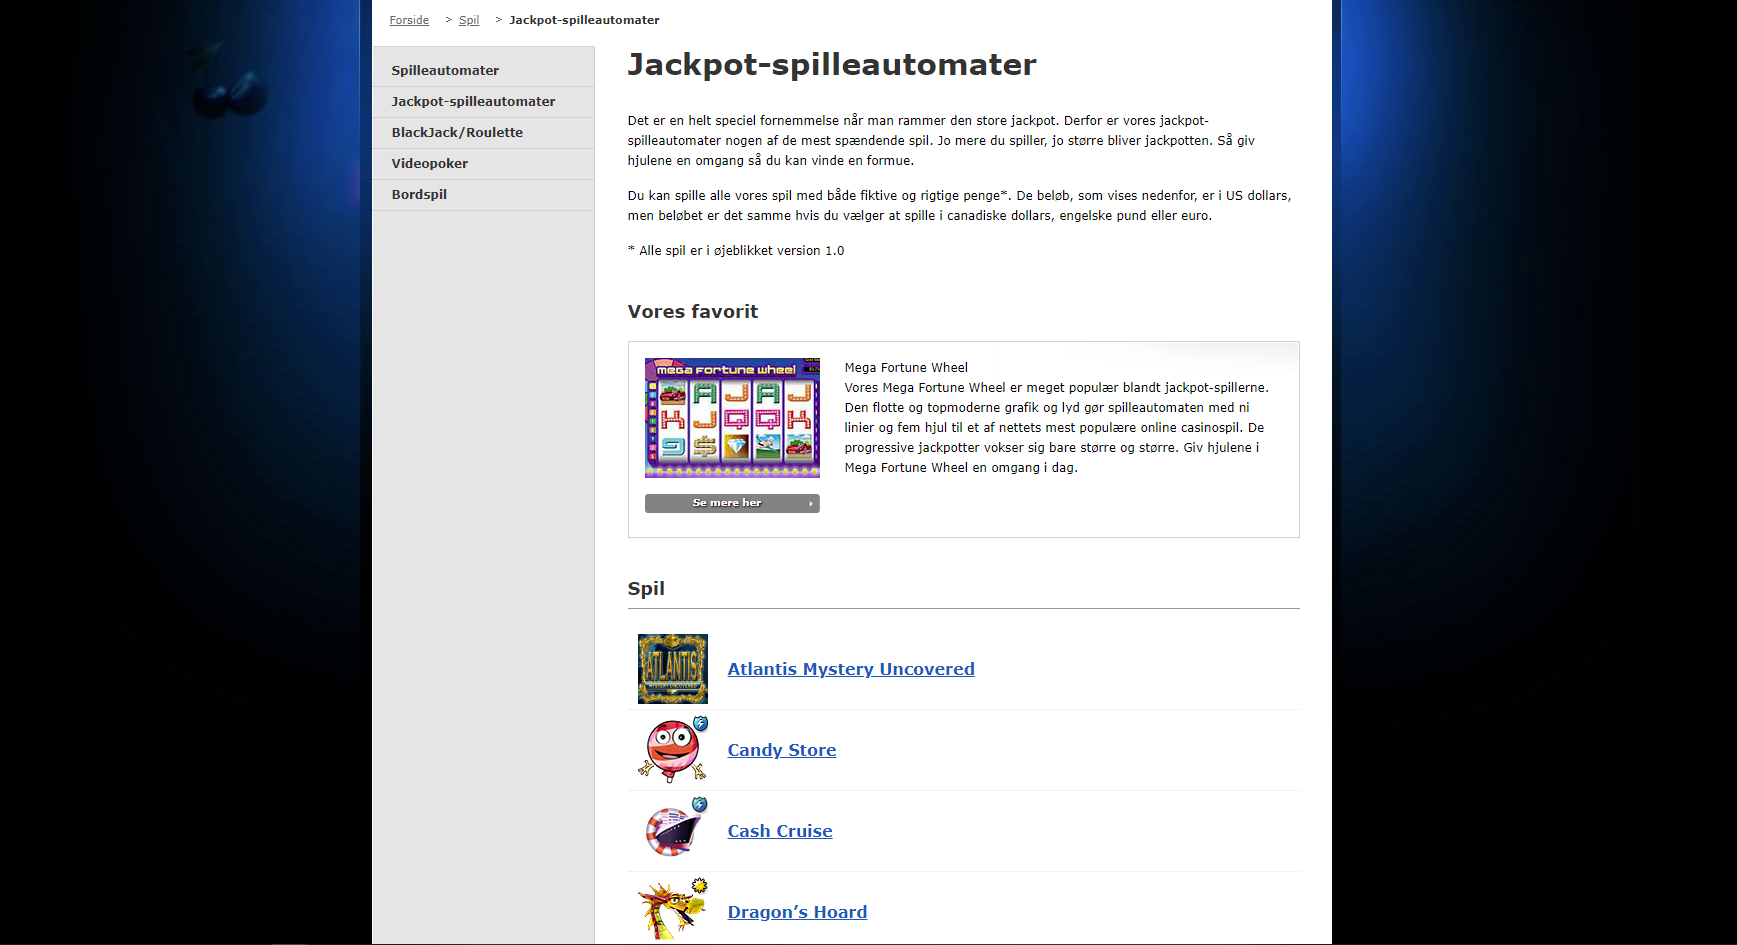 Party Casino Jackpot Spilleautomater